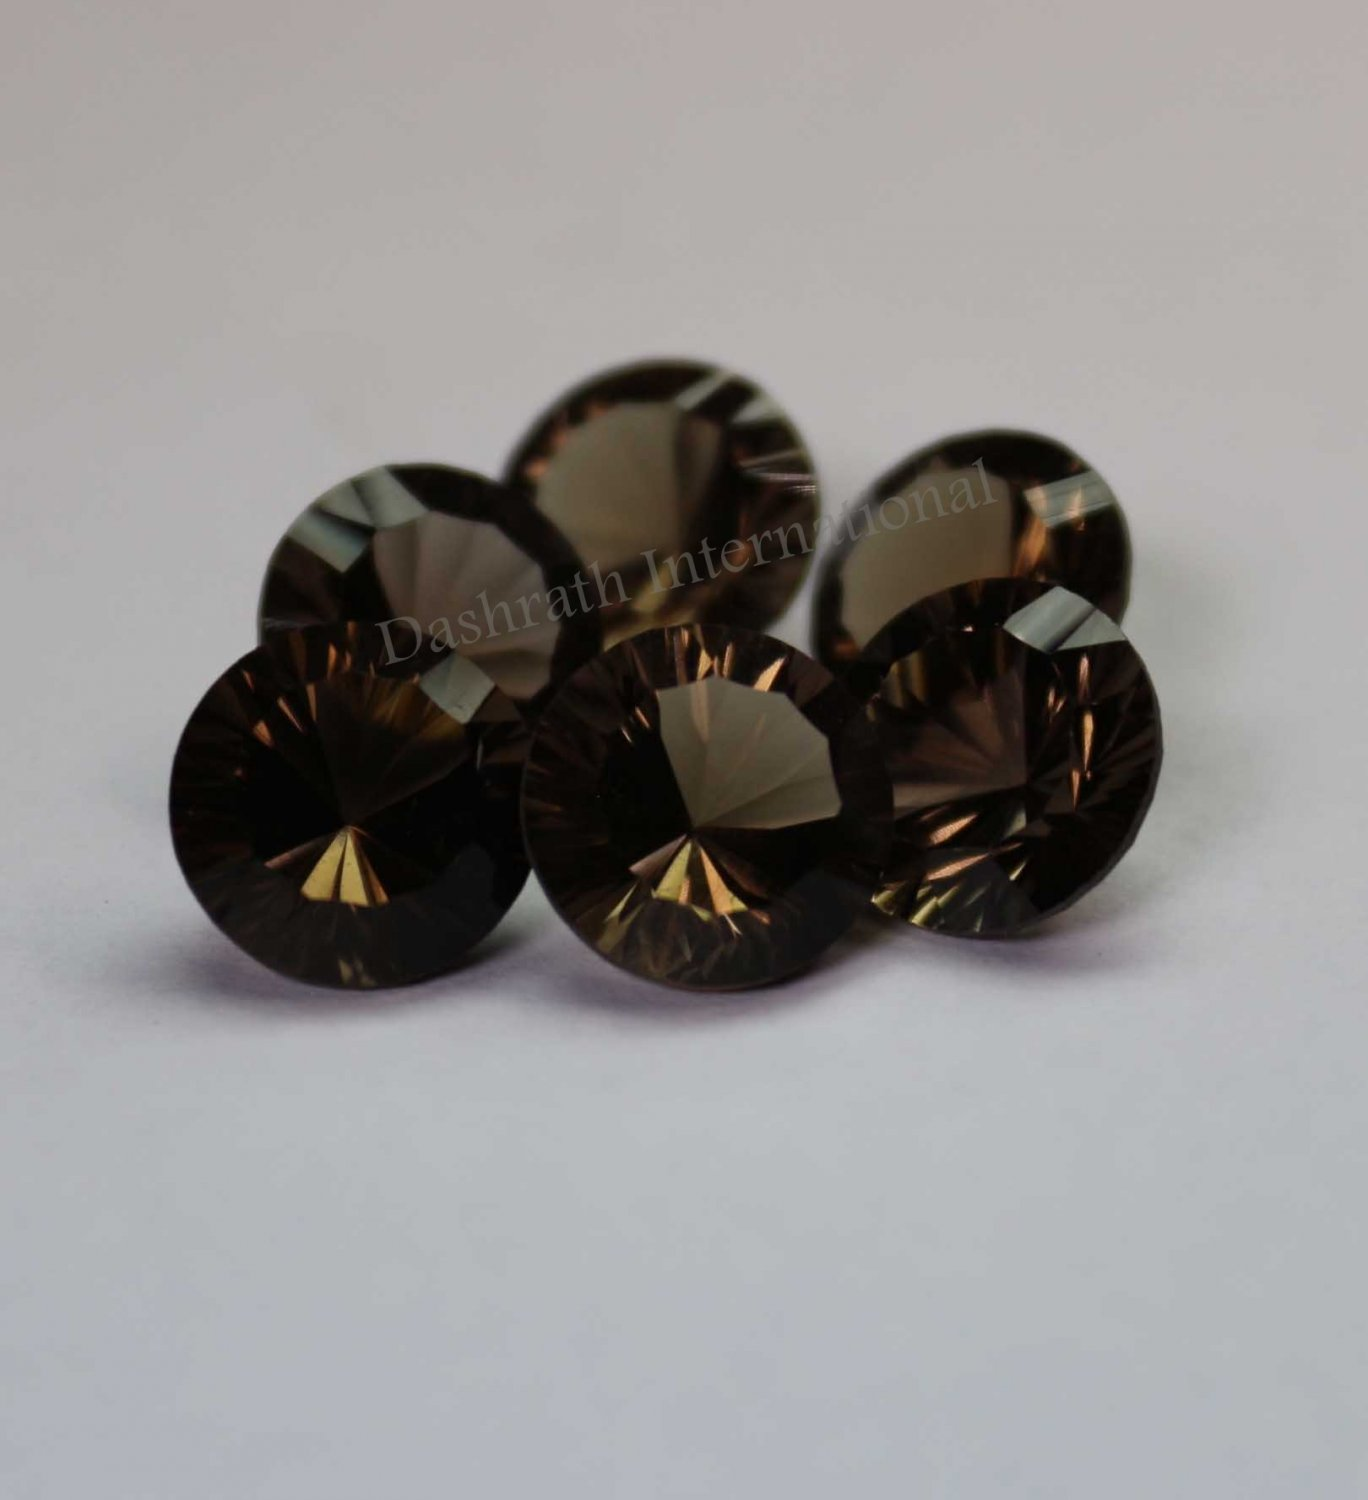 14mmNatural Smoky Quartz Concave Cut Round 100 Pieces Lot    (SI) Top Quality  Loose Gemstone